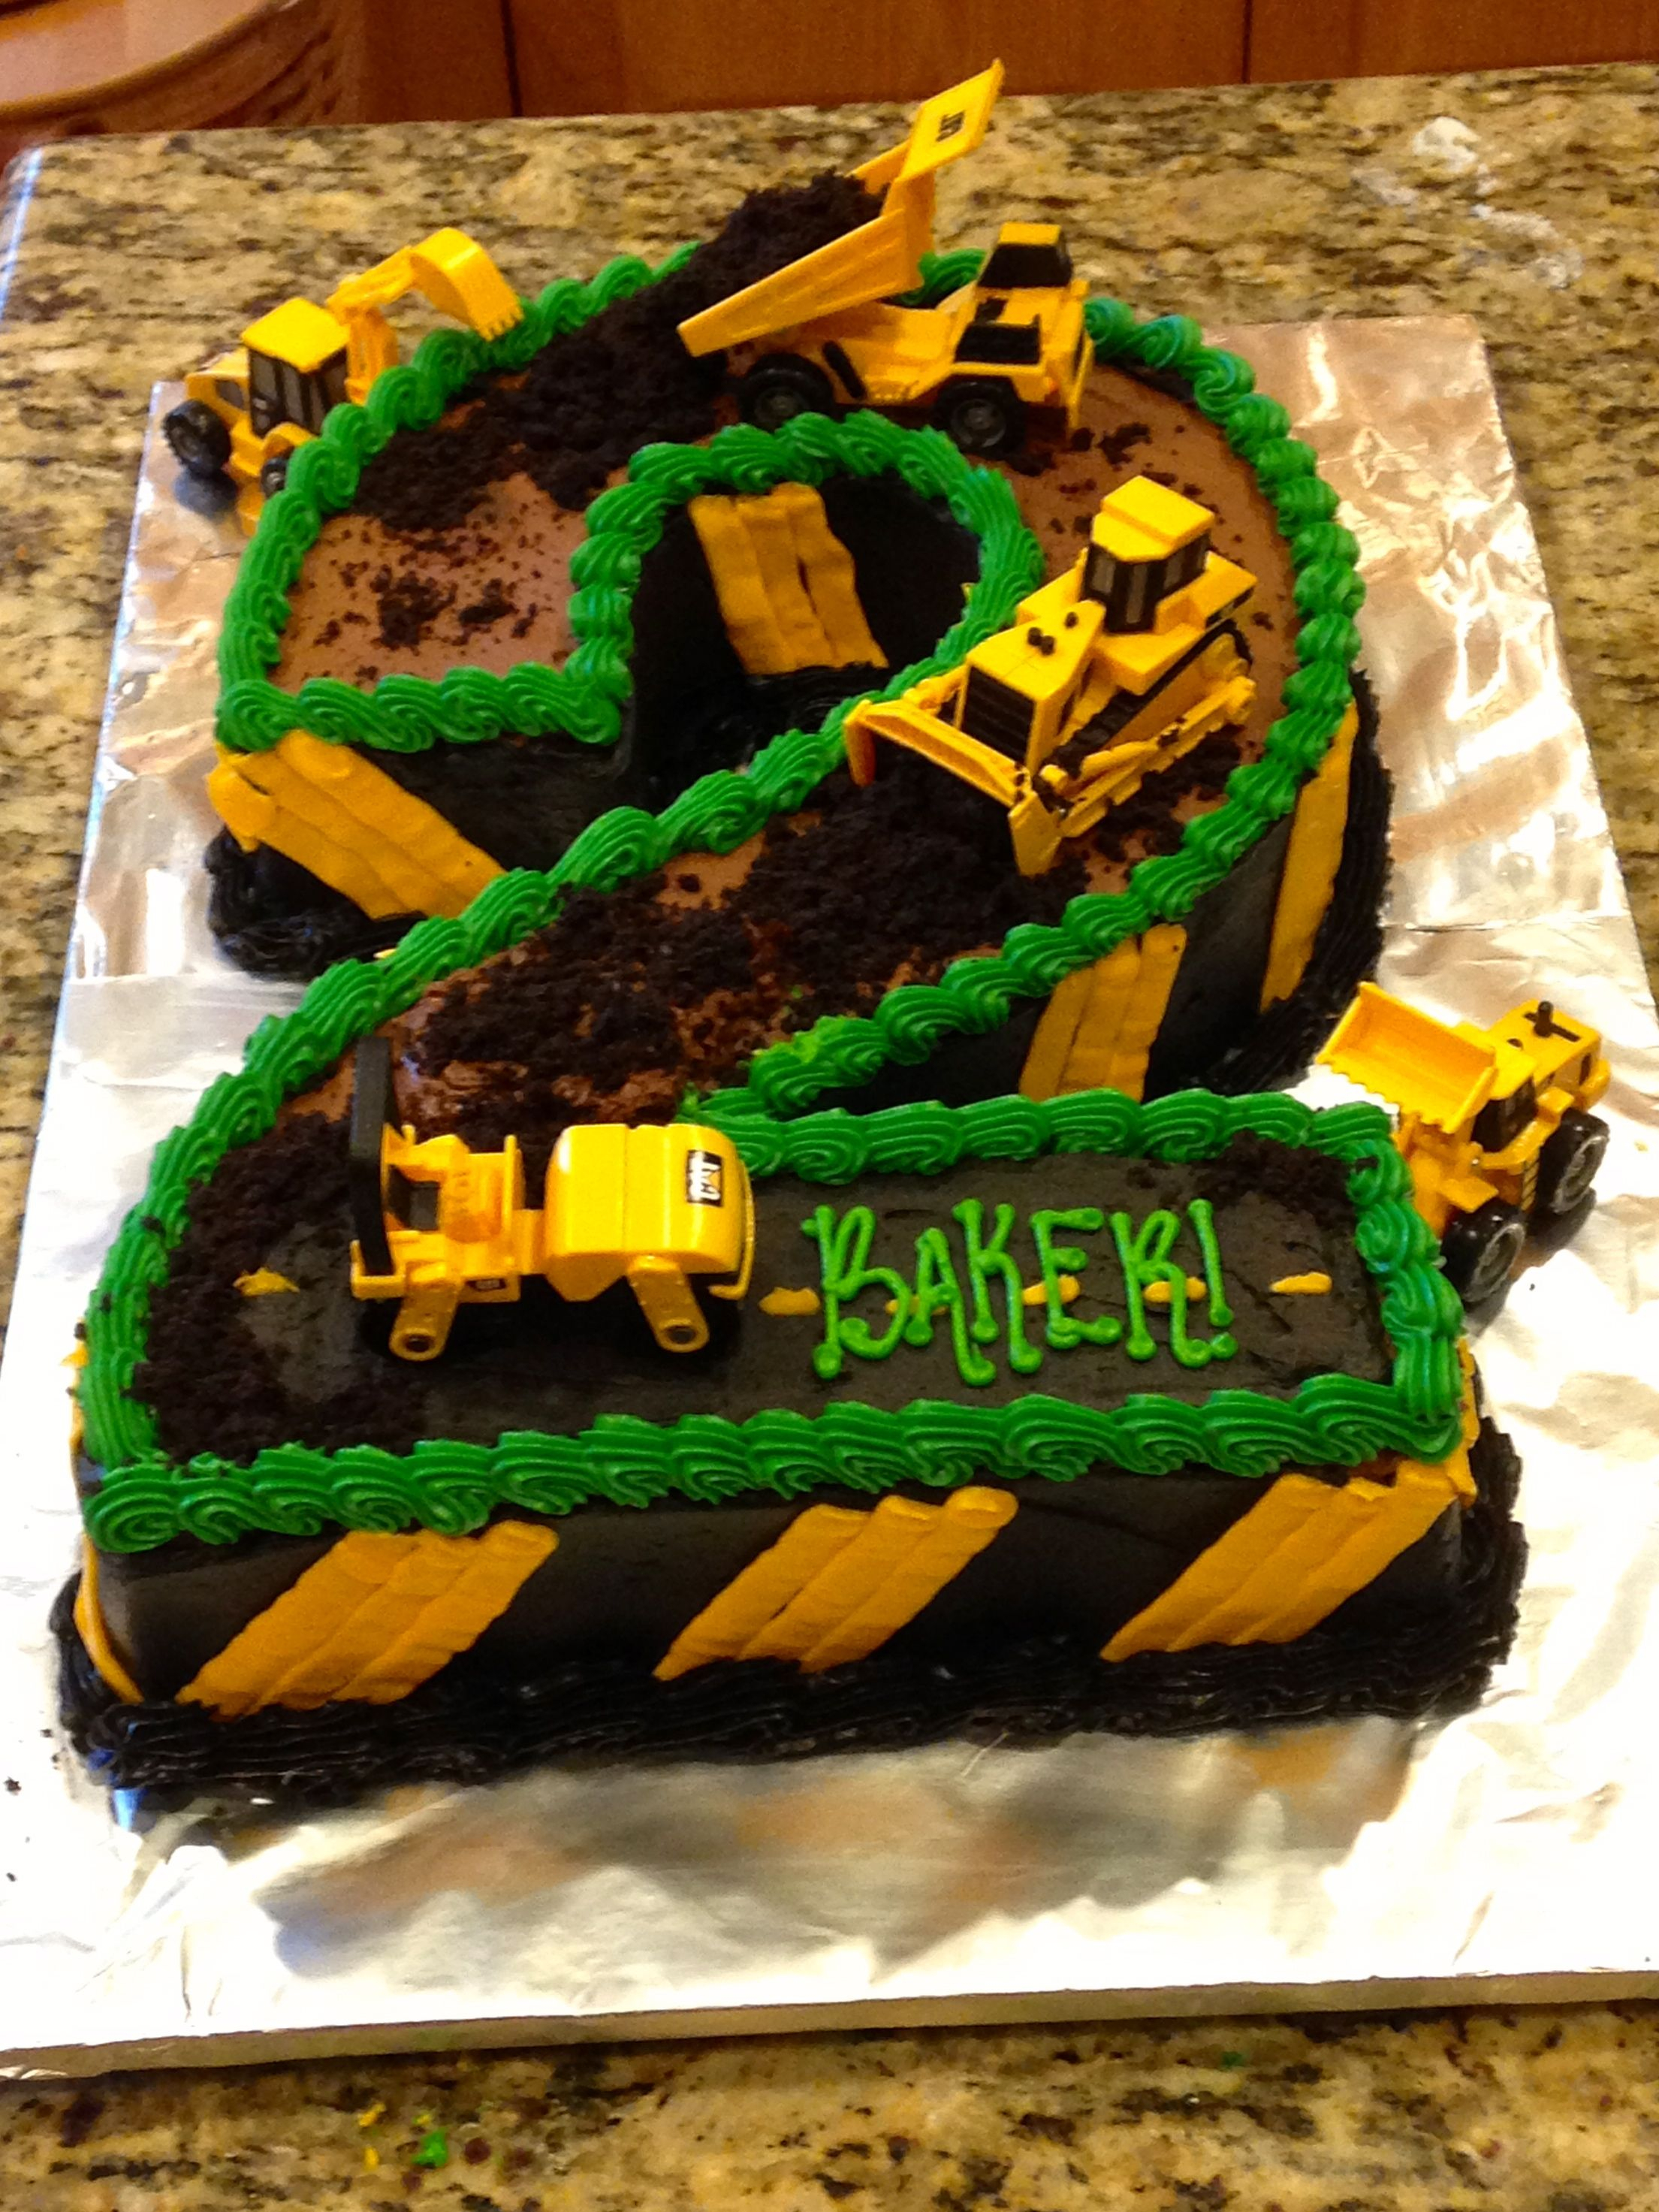 Construction Birthday Cakes Construction Theme 2nd Birthday Cake Construction Cake Dirt Cake 2